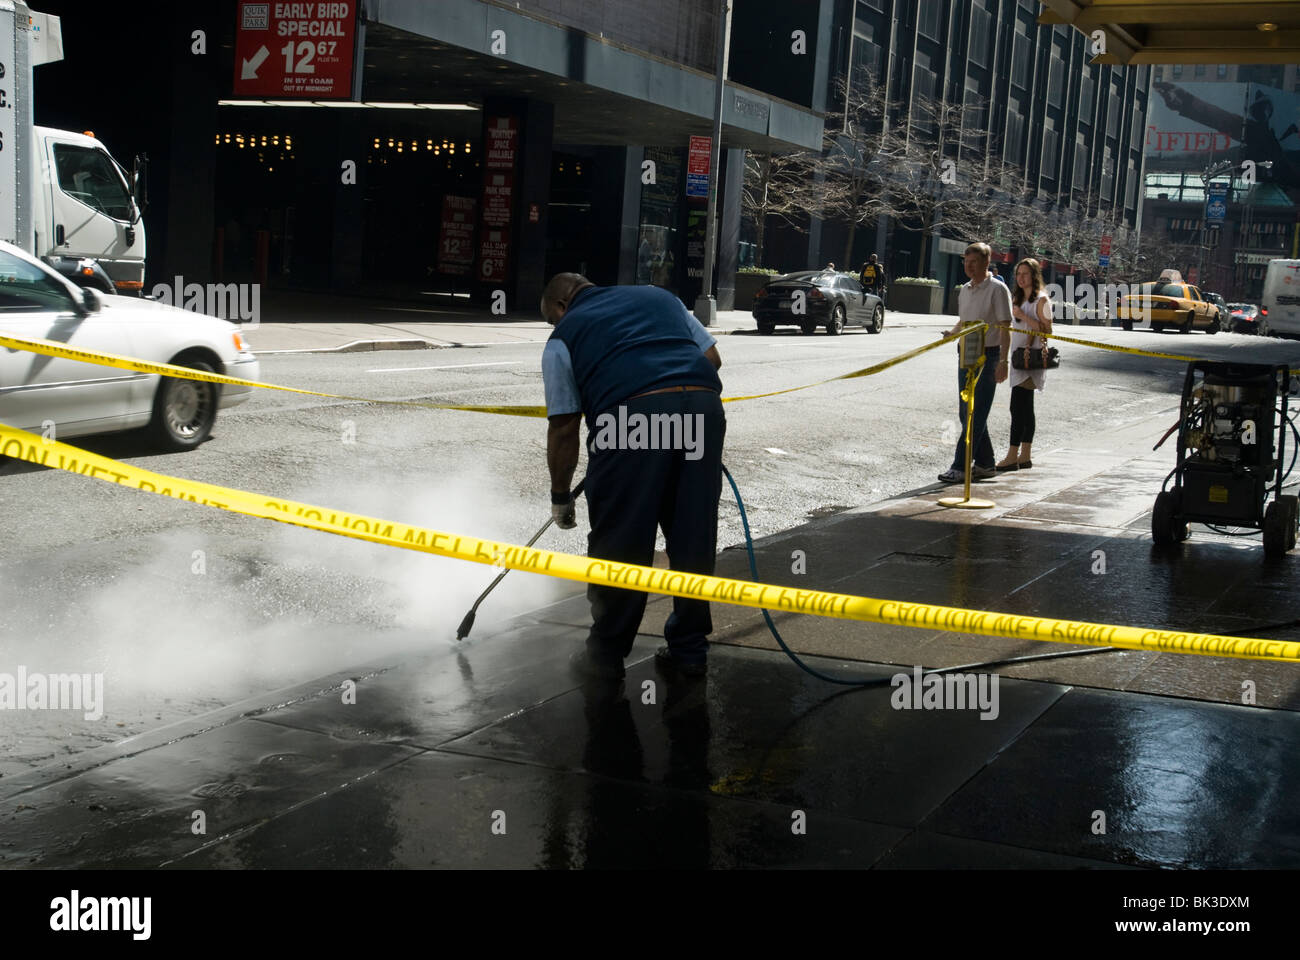 A worker uses a high pressure water hose to clean a sidewalk in New York - Stock Image